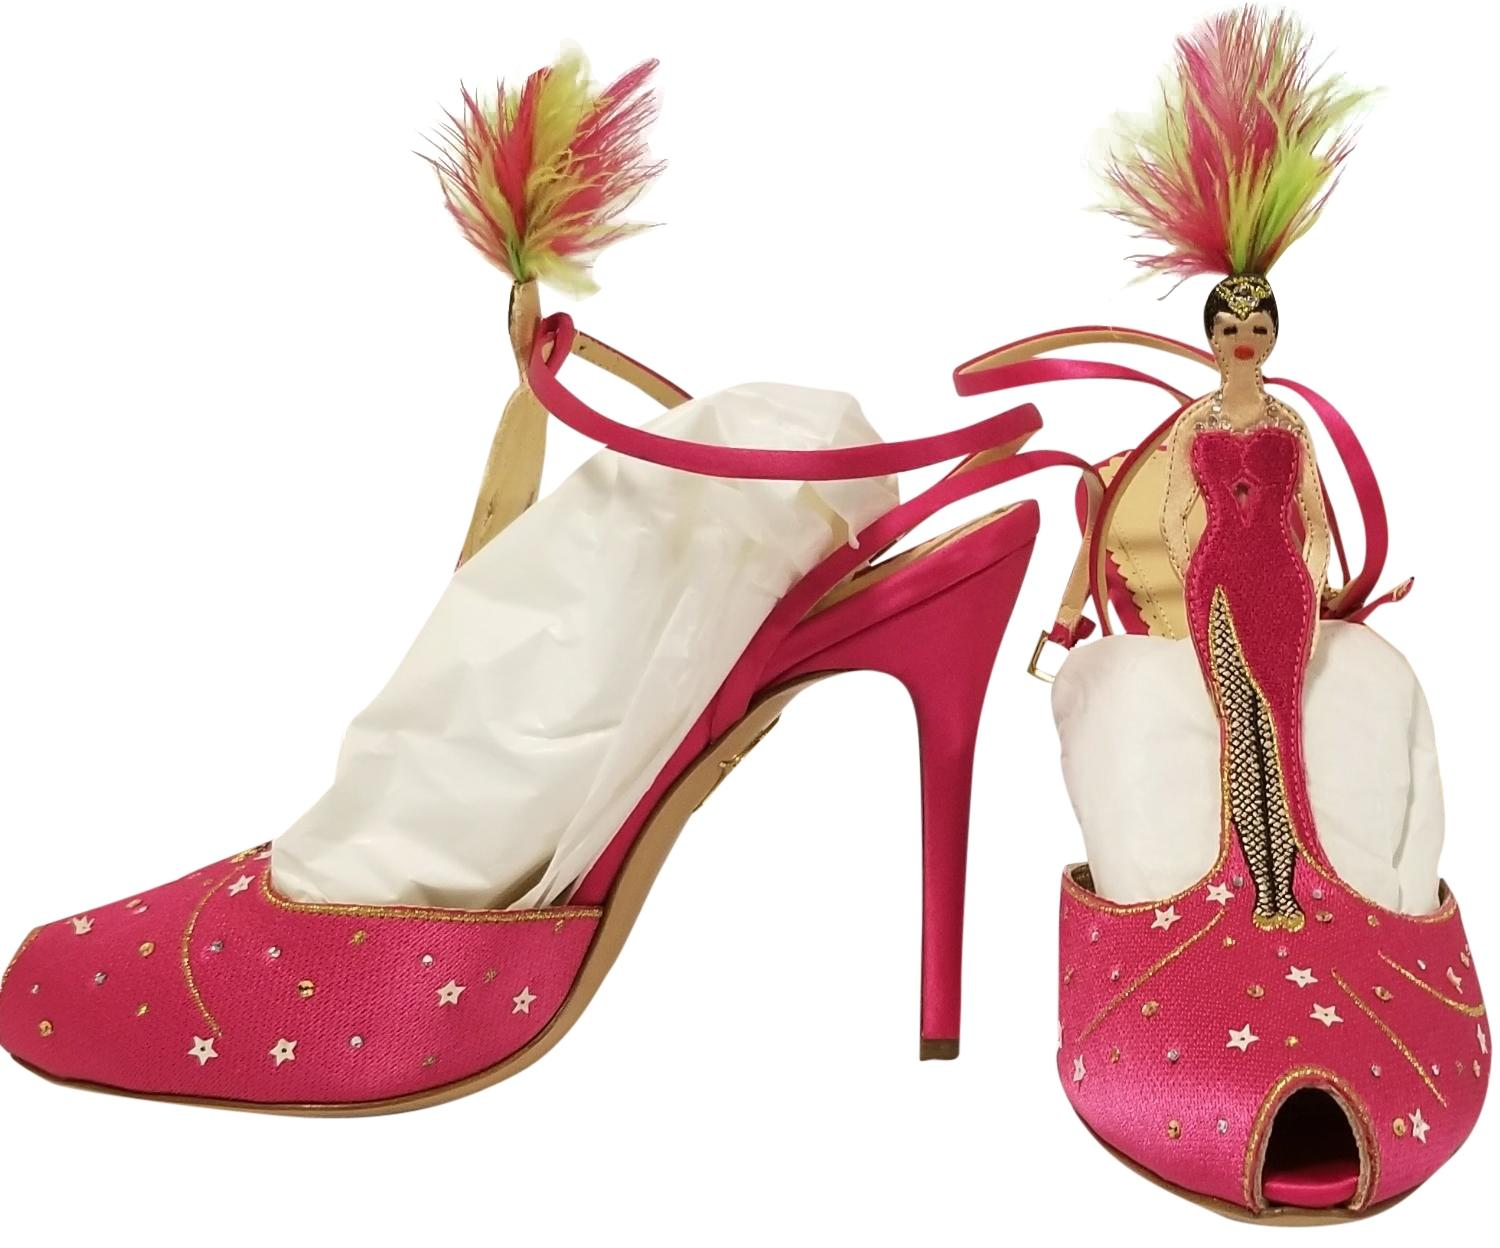 Charlotte Olympia Pink Around The World Las Vegas Platforms Size US 9 Narrow (Aa, N)